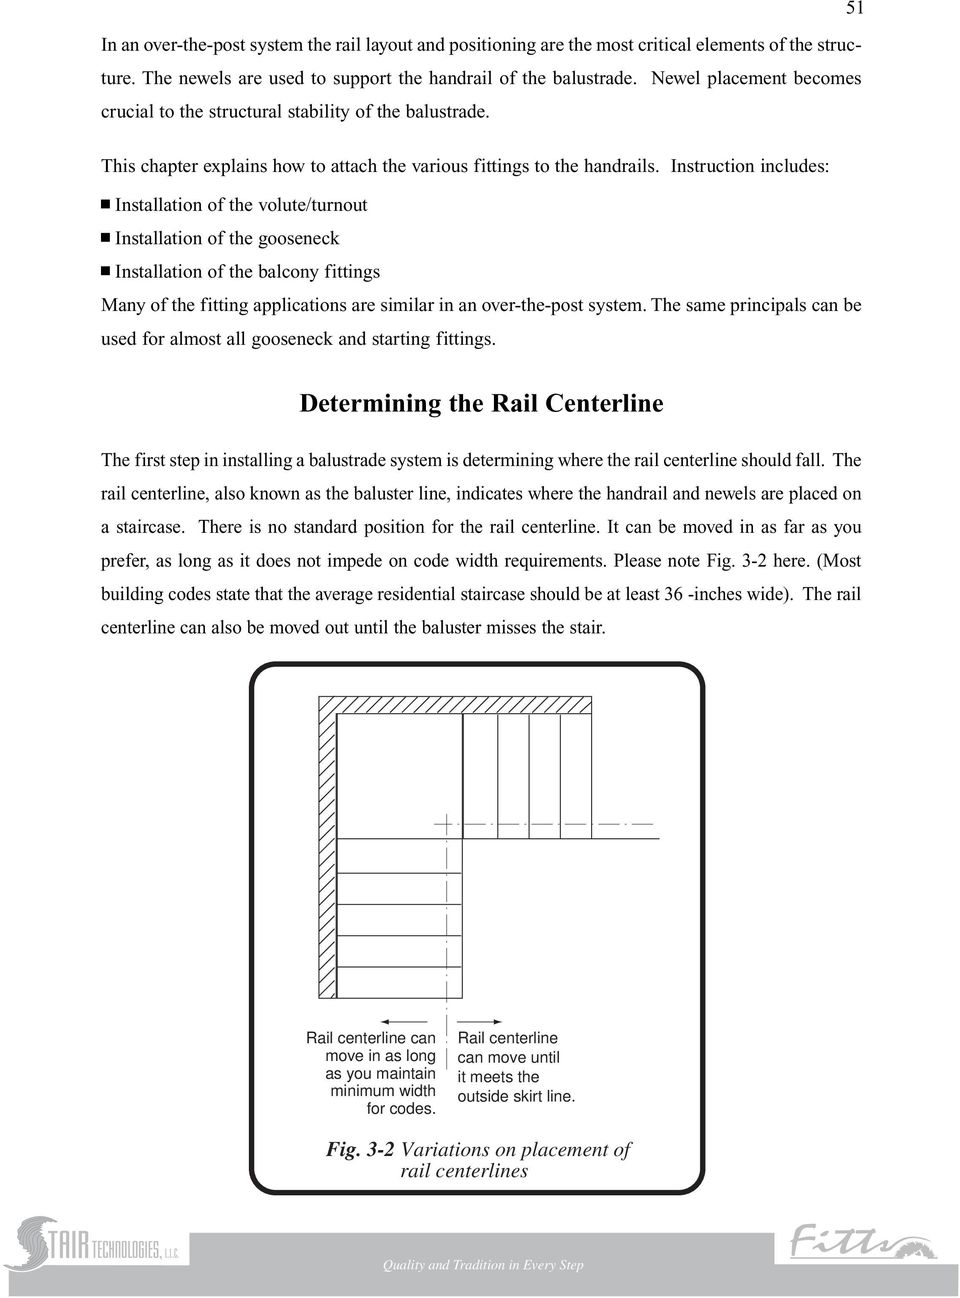 Instruction includes: Installation of the volute/turnout Installation of the gooseneck Installation of the balcony fittings Many of the fitting applications are similar in an over-the-post system.